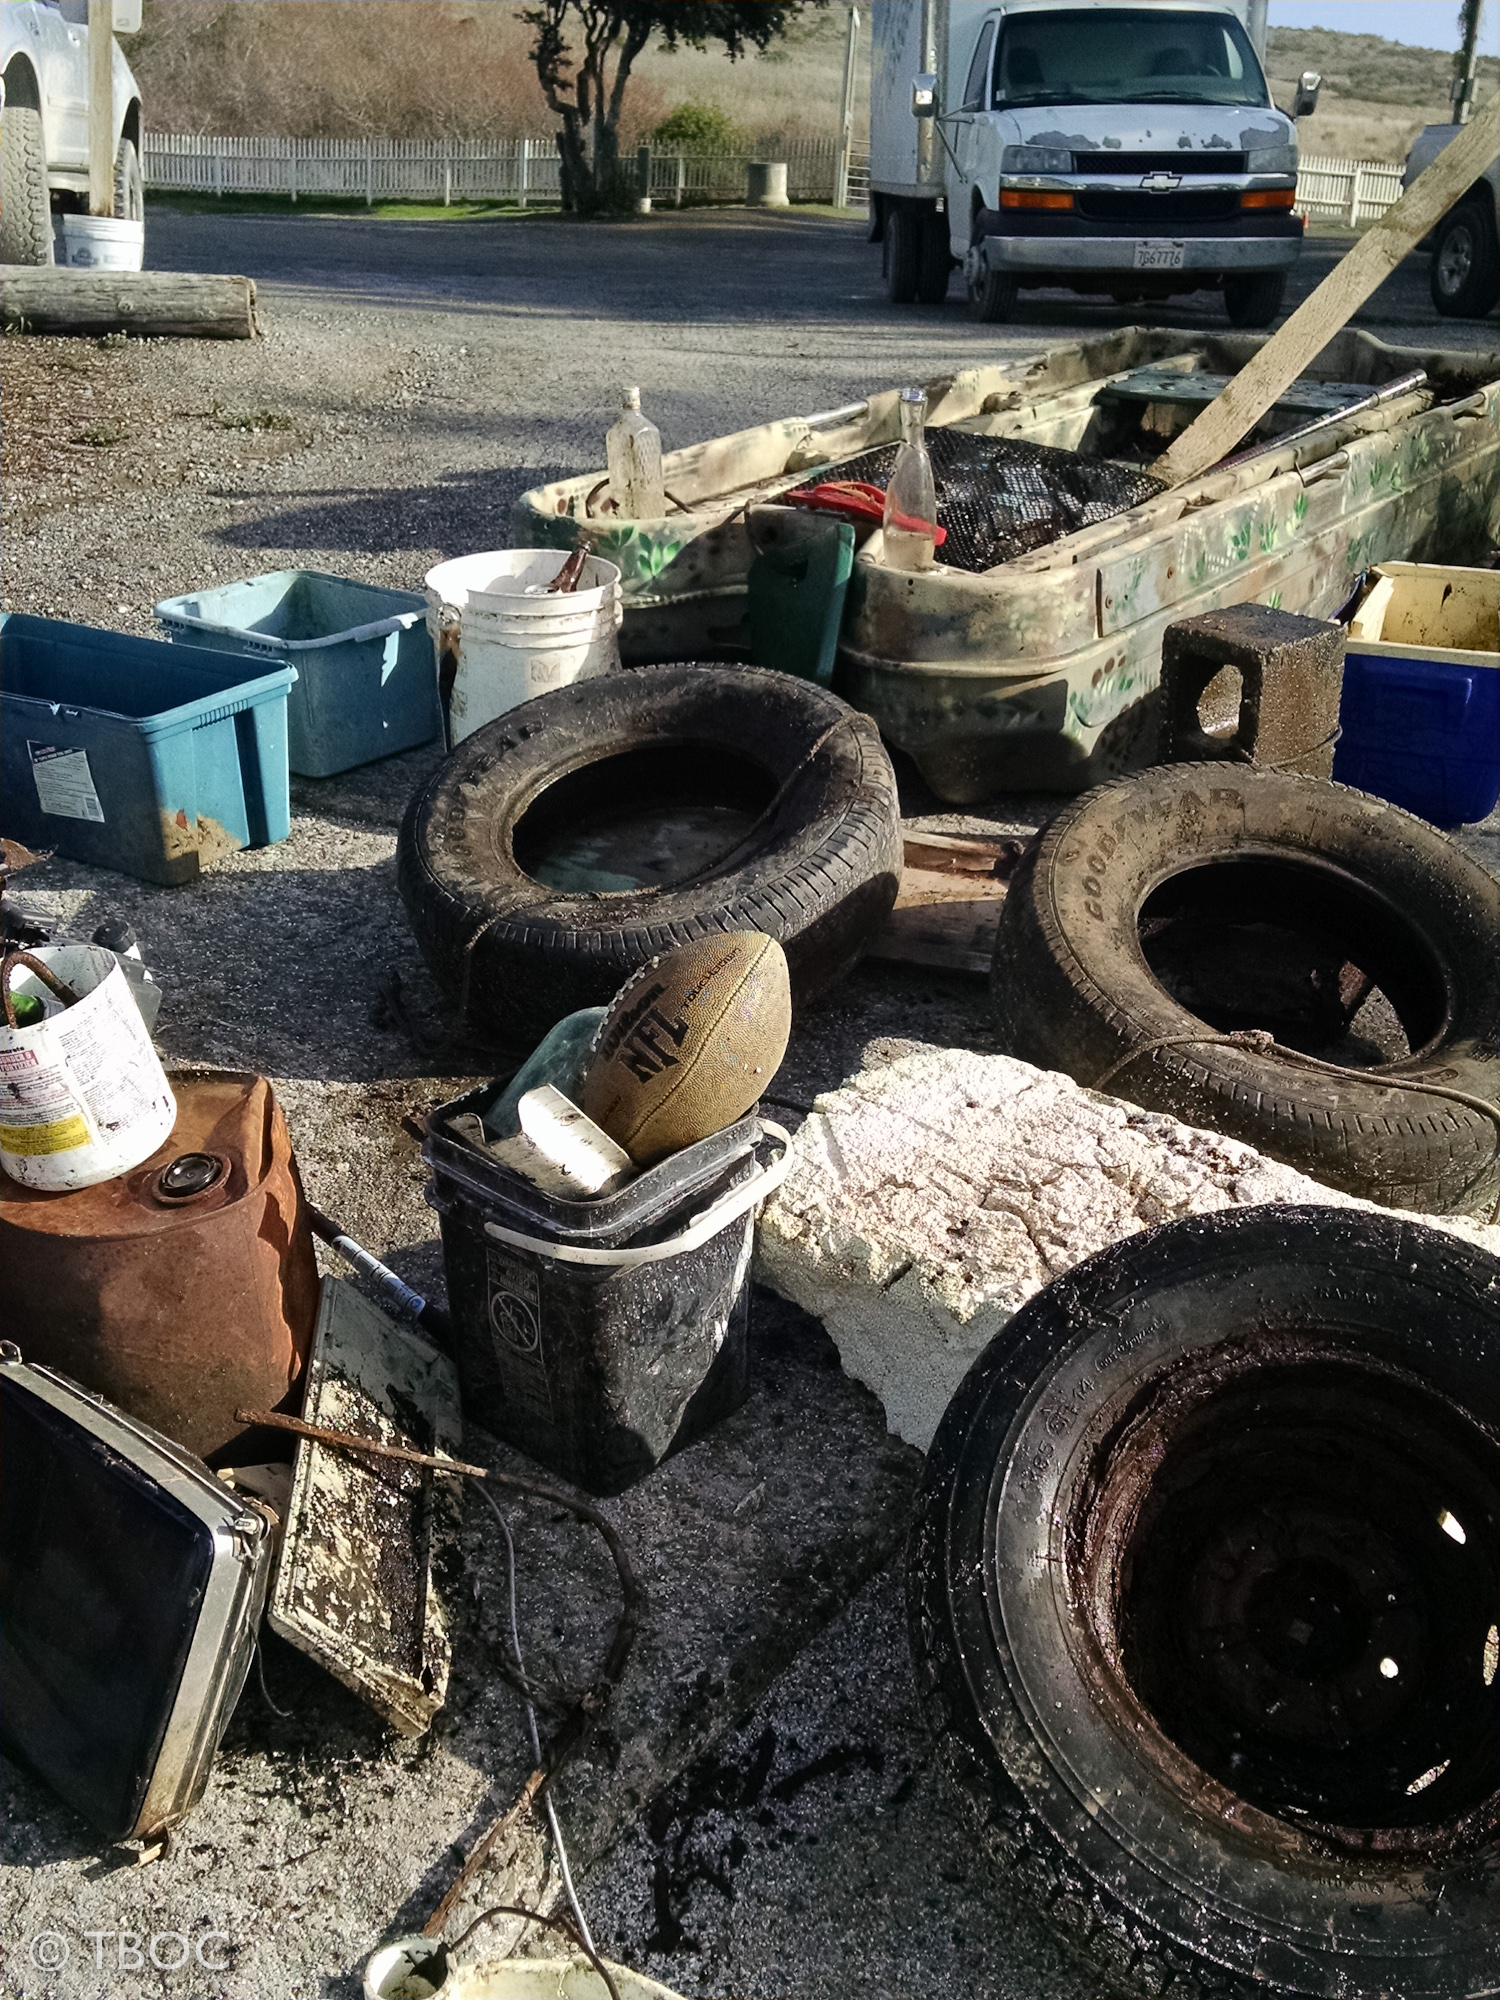 tires, foam football, plastic of all sorts - all picked up by TBOC workers Dec. 2015.